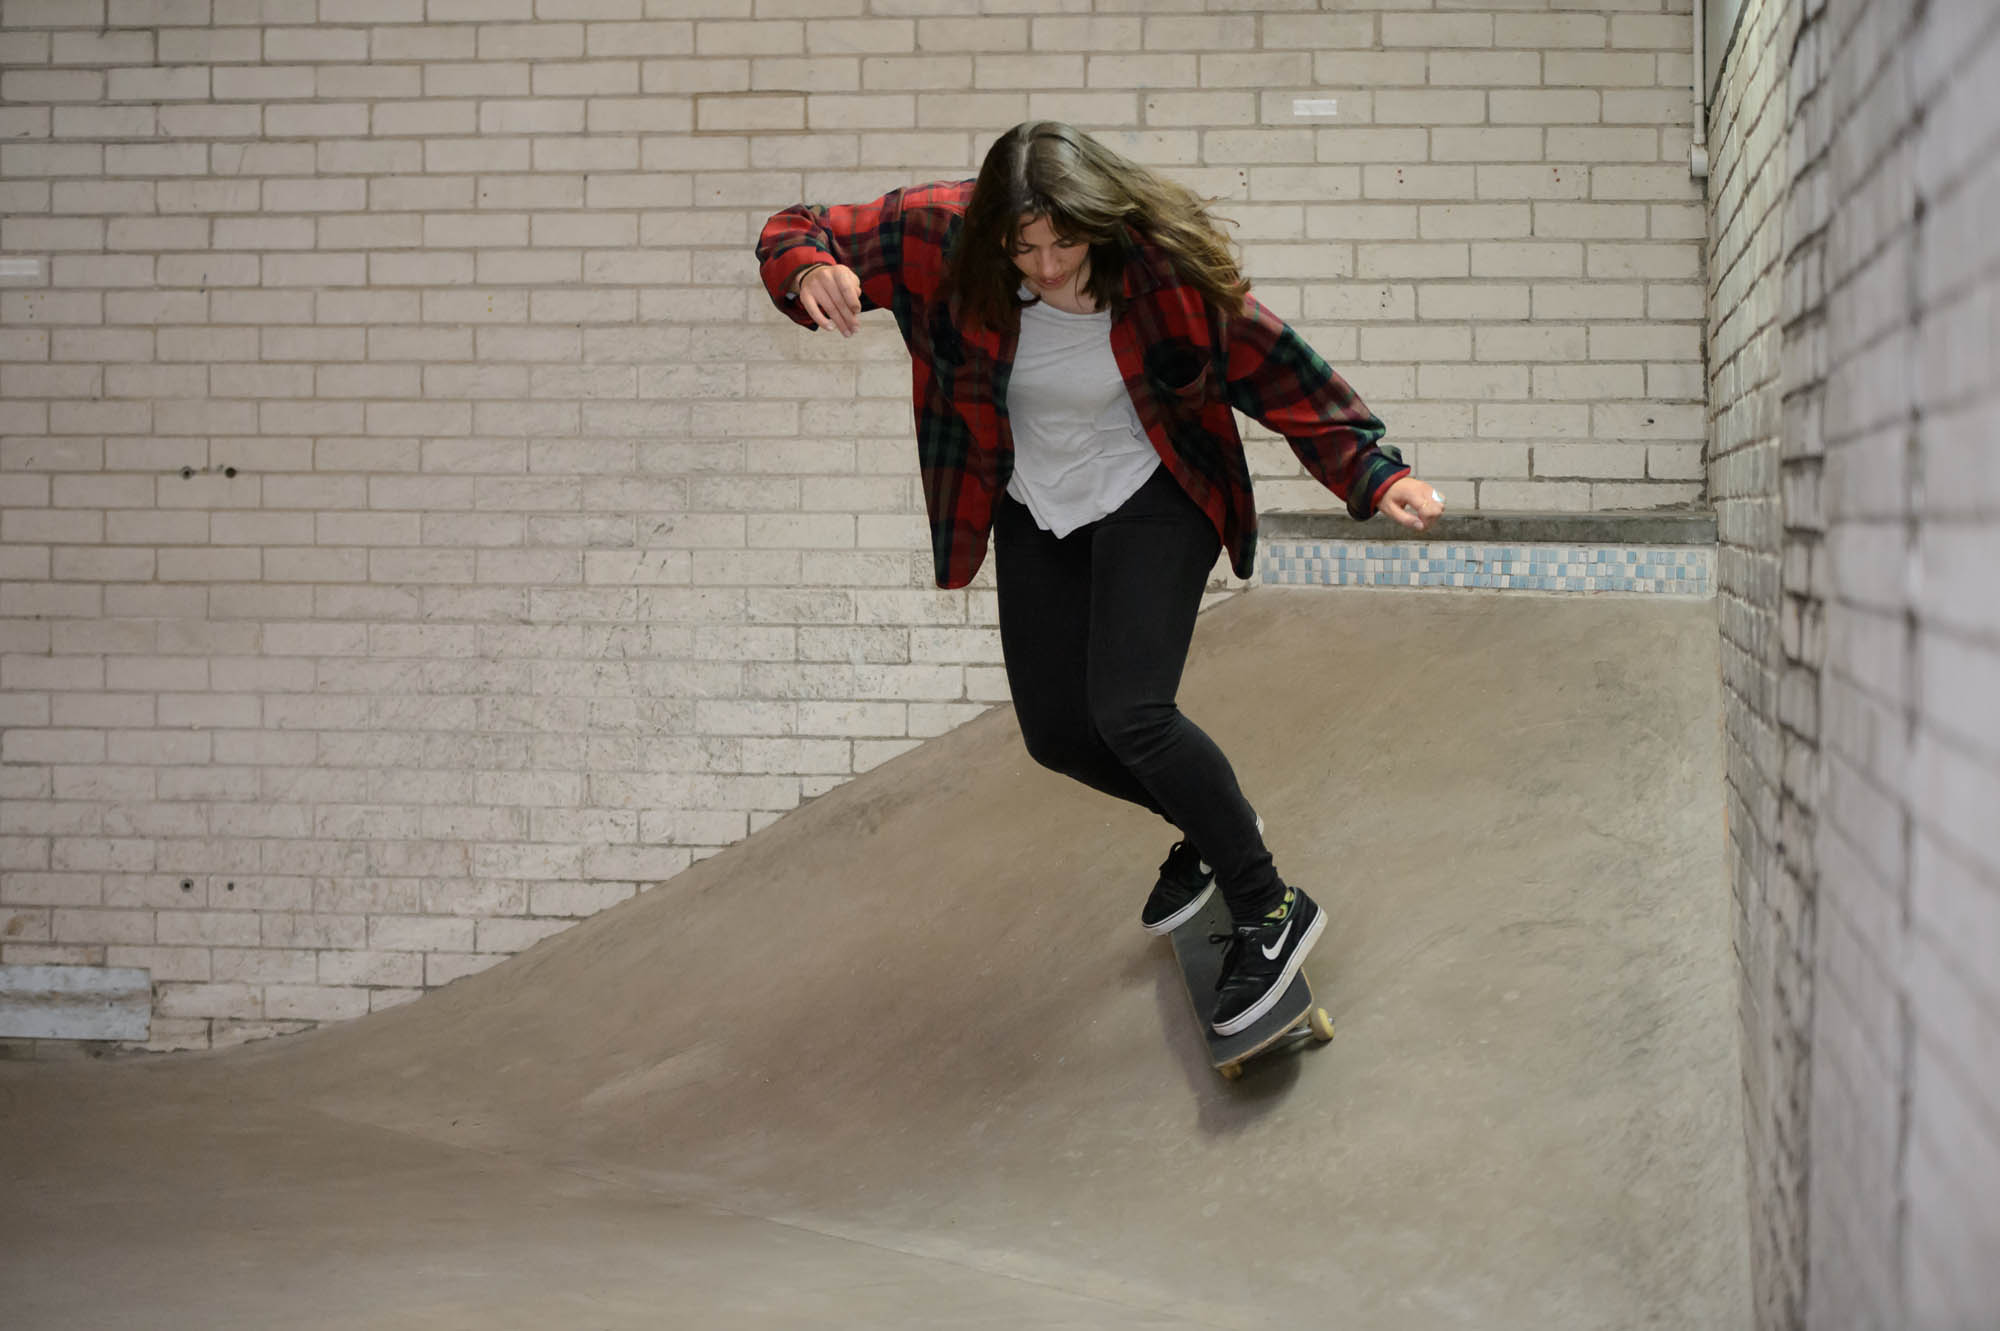 a young woman skateboarding